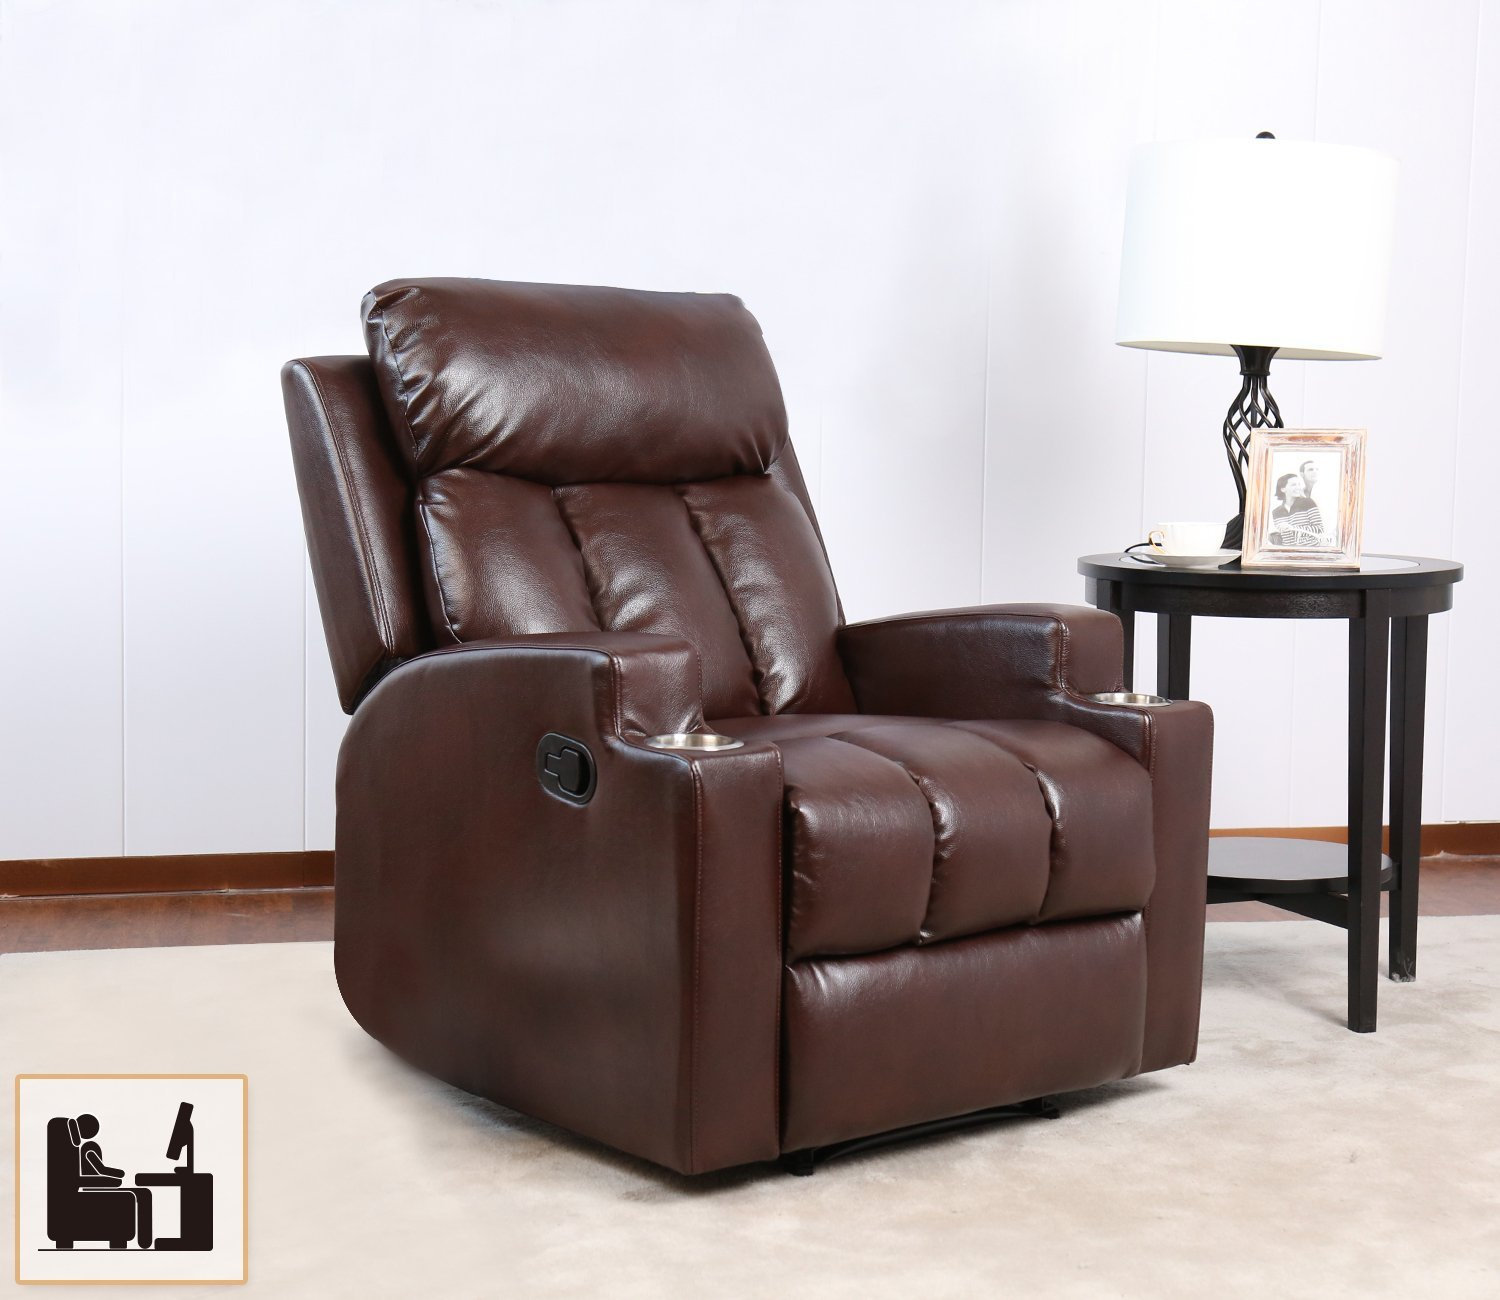 reclining chairs modern counter chair step stool yellow bonzy recliner contemporary theater seating two cup holder brown leather for living room durable framework walmart com